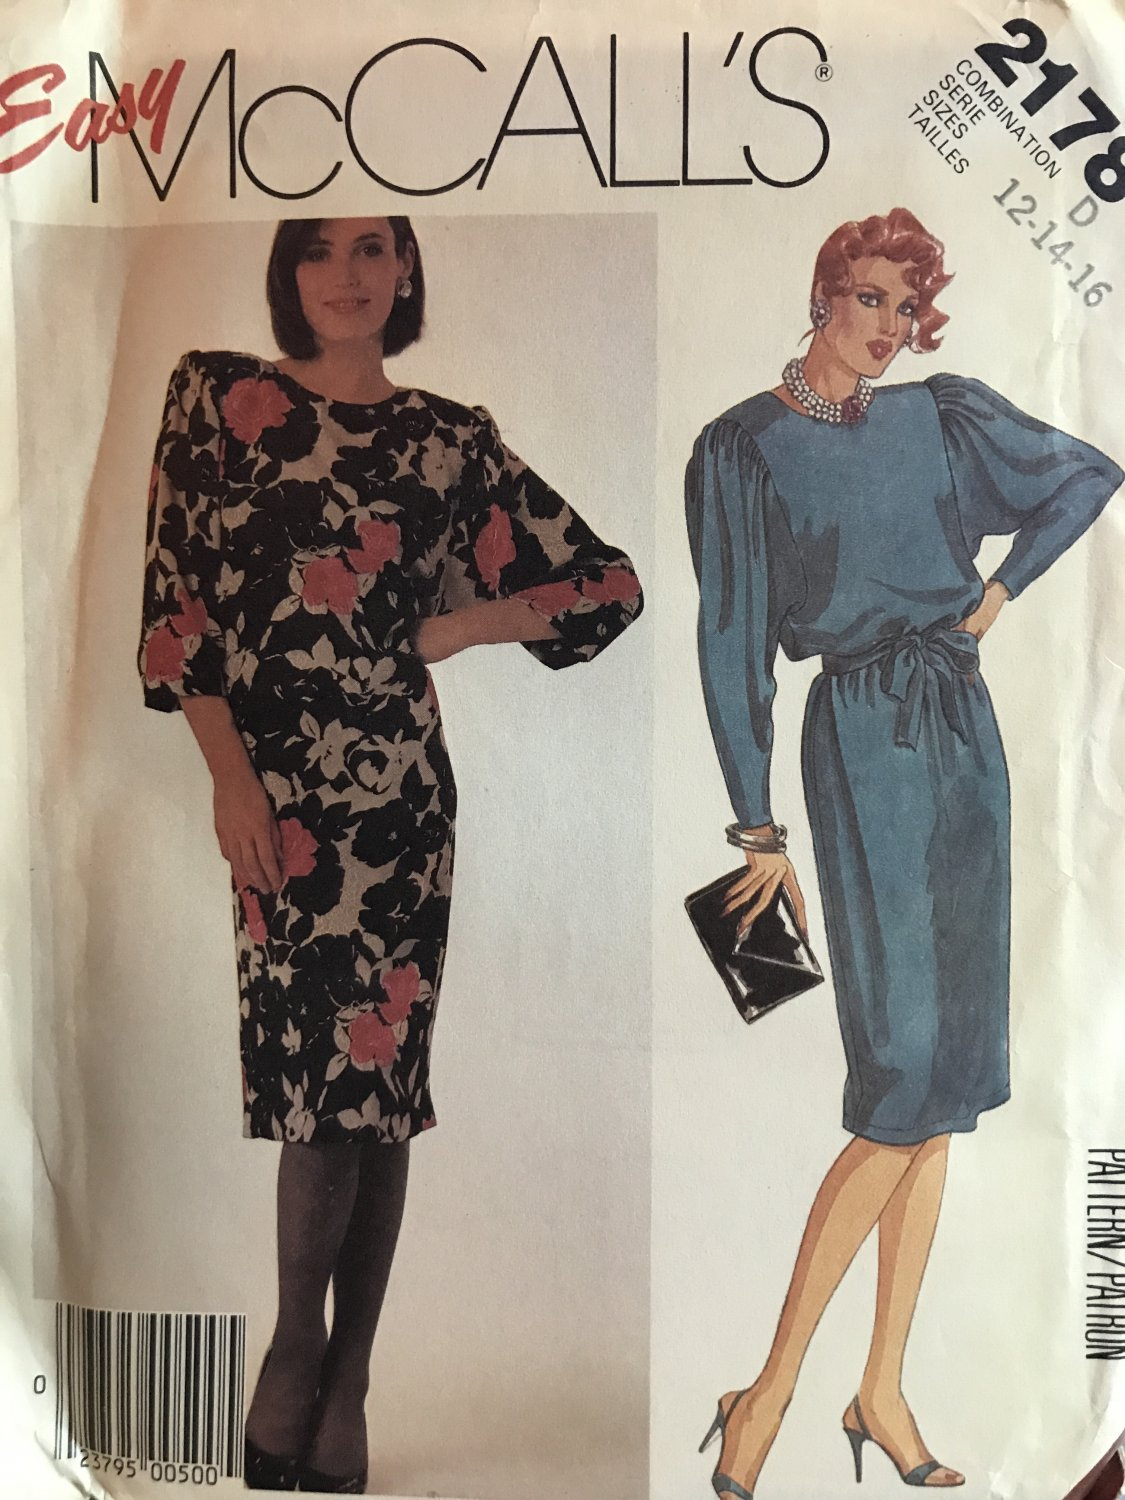 McCalls 2178 Misses' Dress with tie belt Sewing Pattern Size 12 14 16